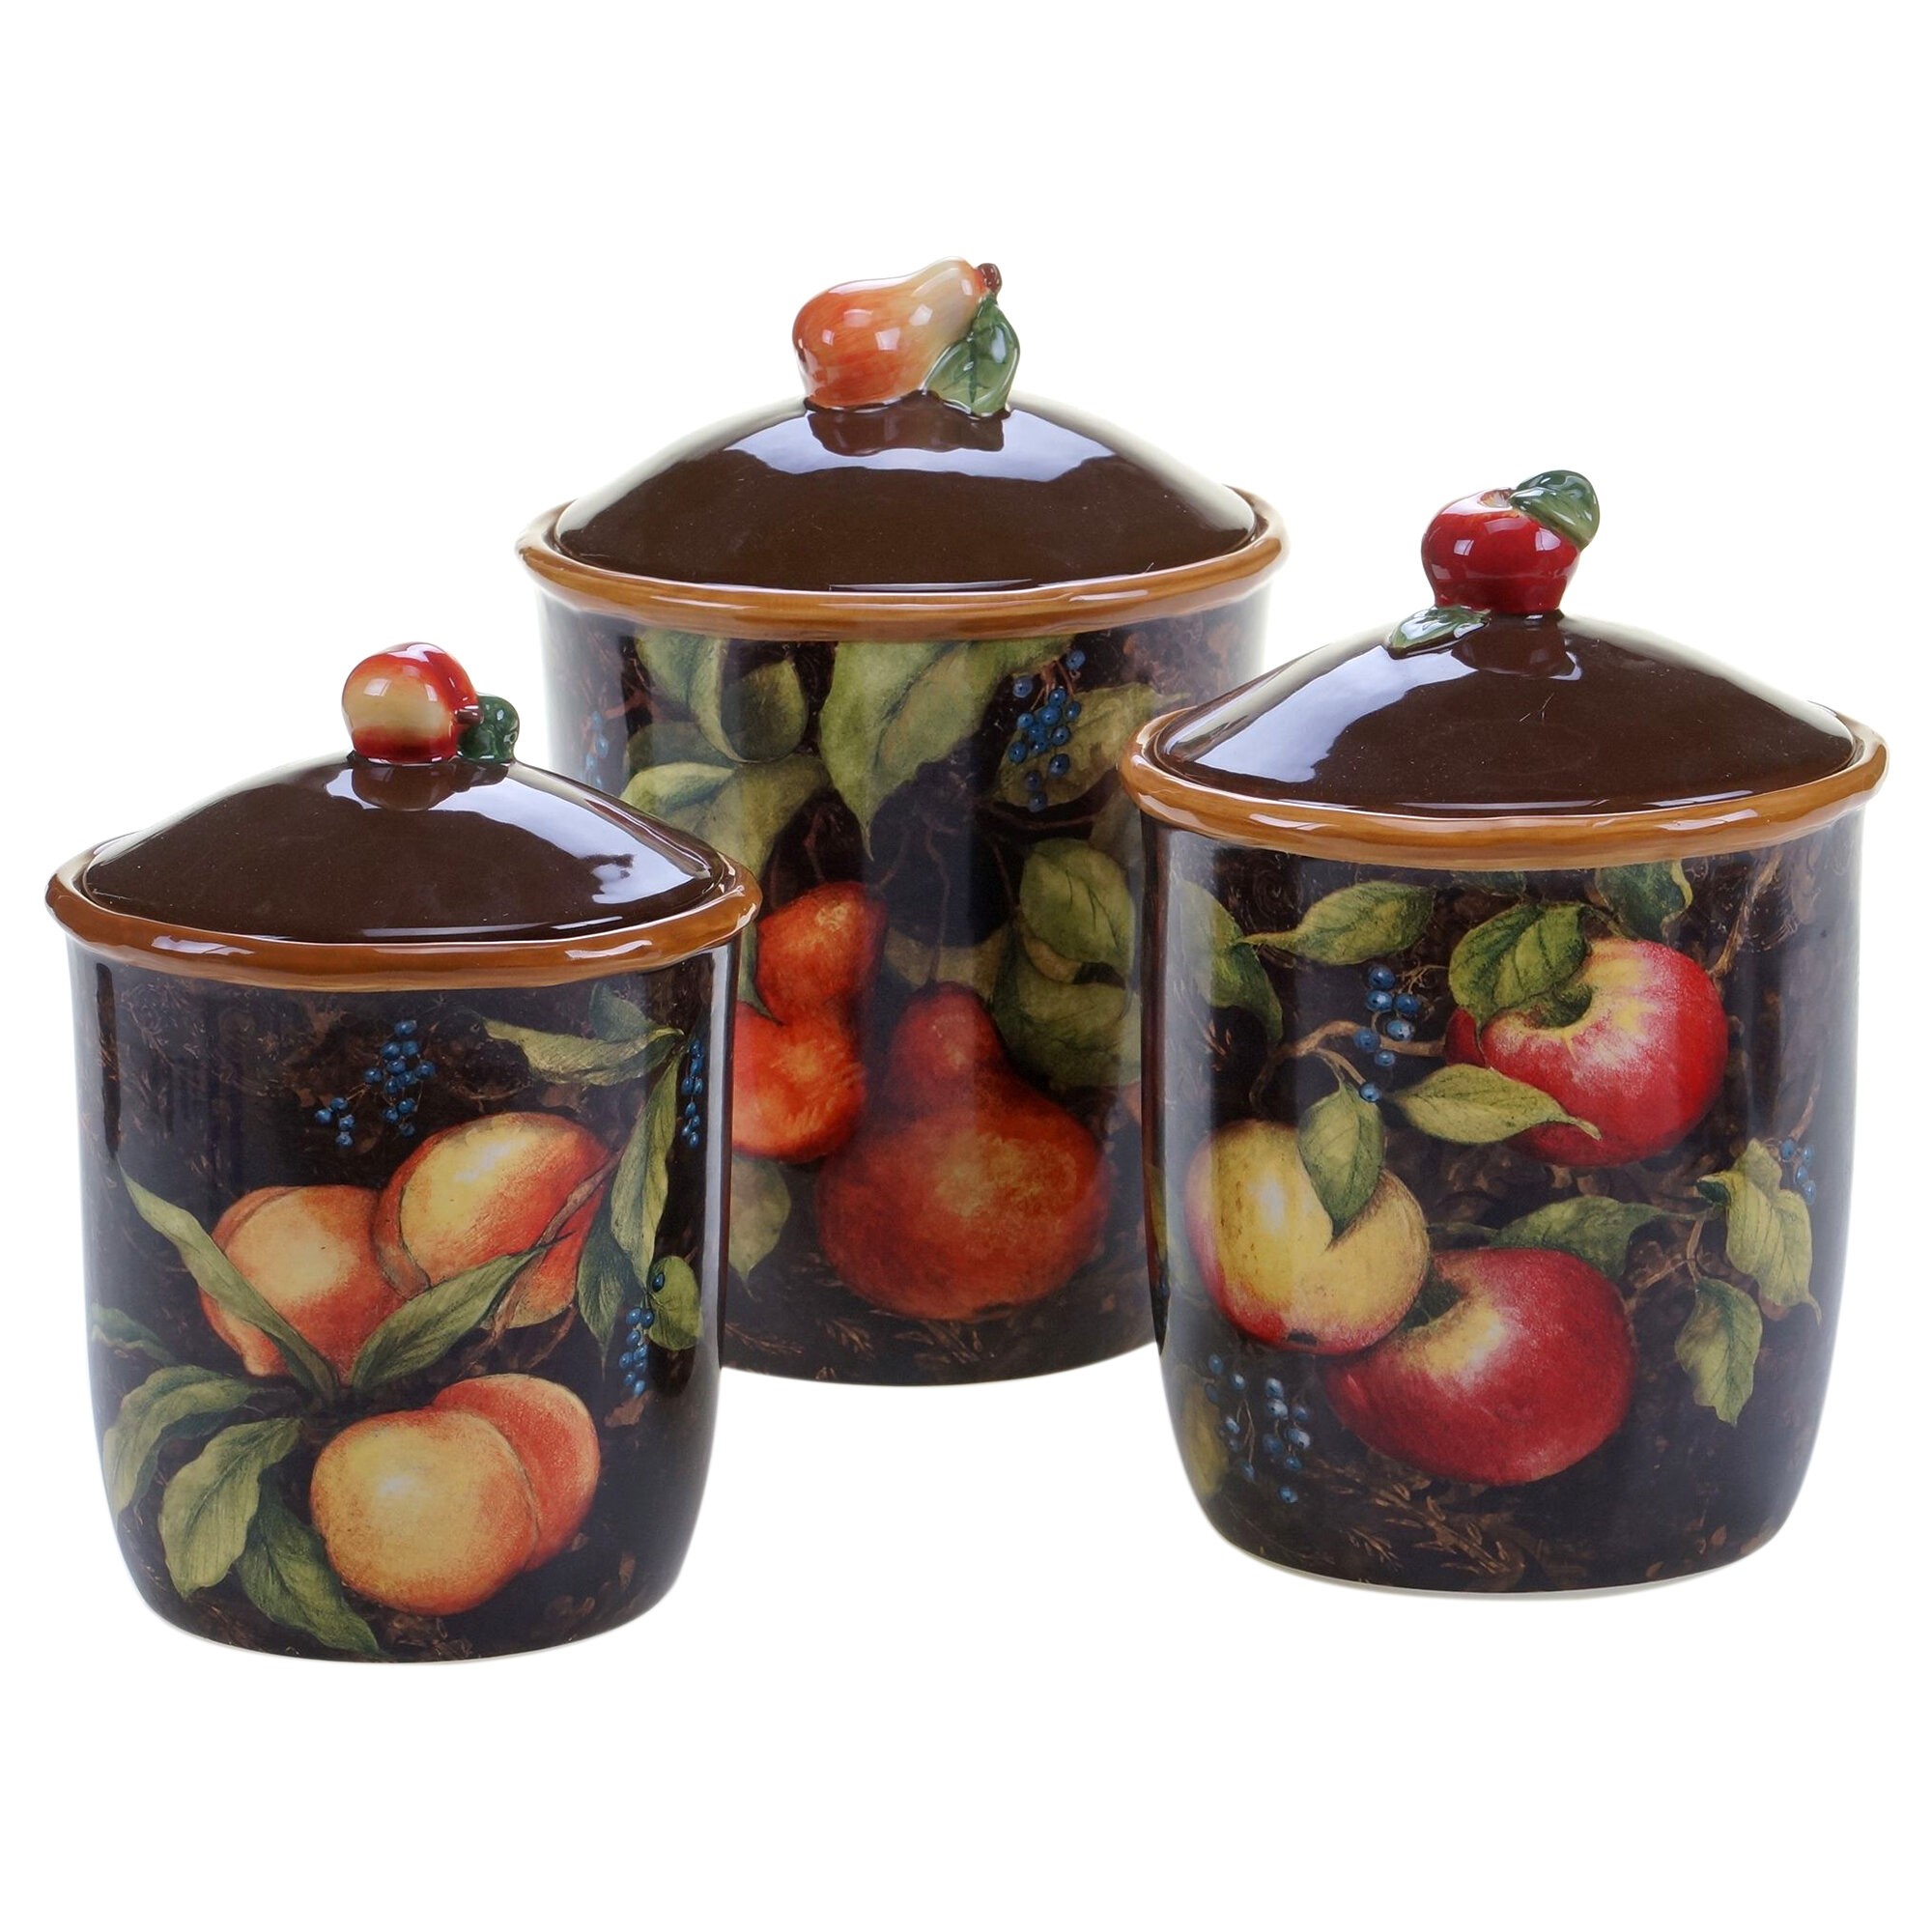 Kitchen Canisters Sets: Certified International Capri 3 Piece Kitchen Canister Set